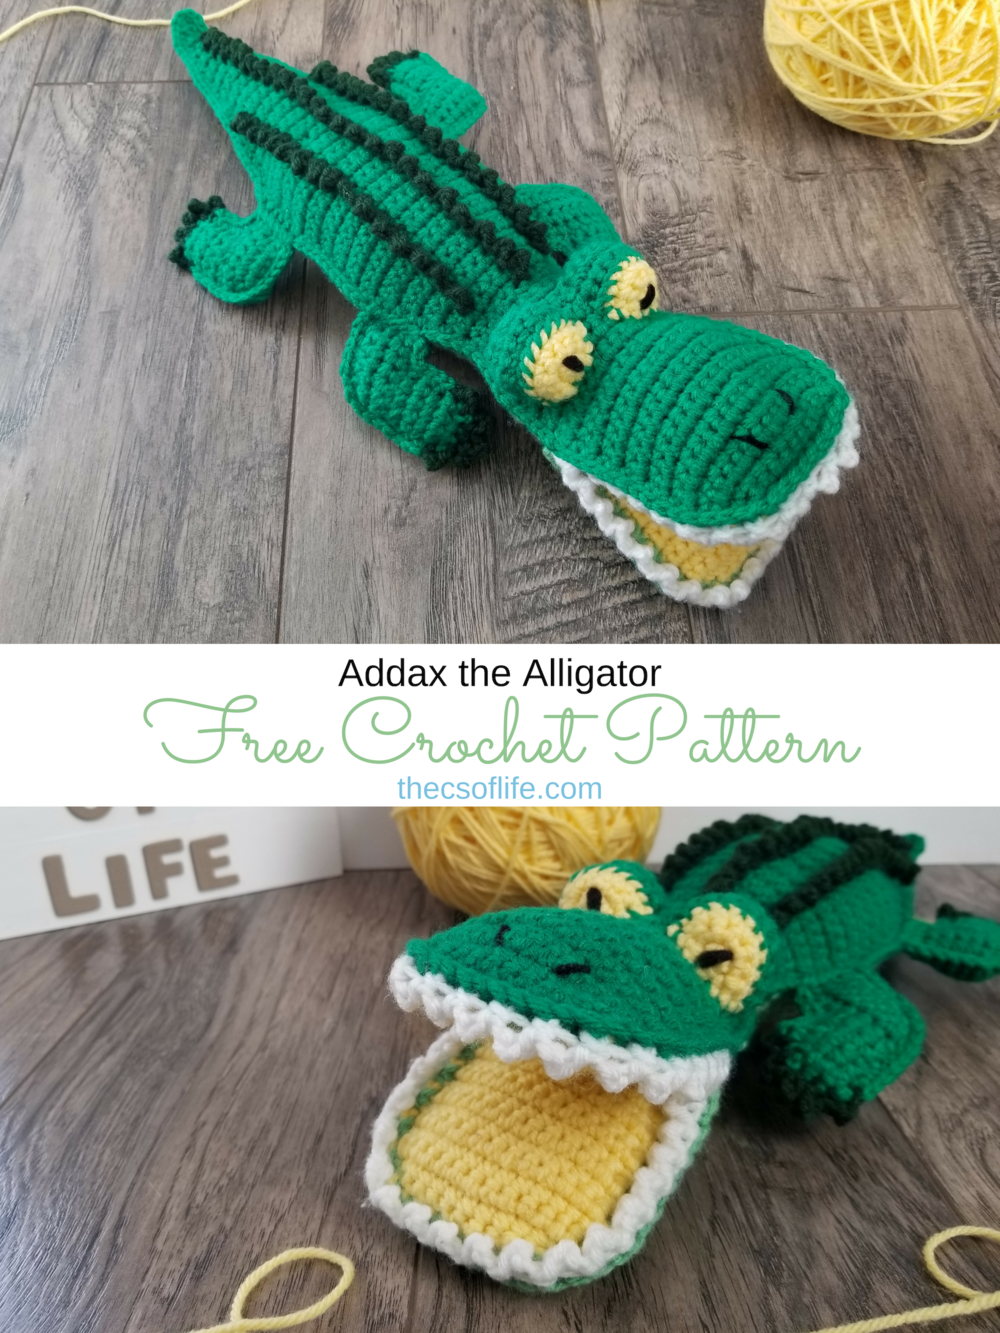 Addax the Alligator - Free Crochet Pattern